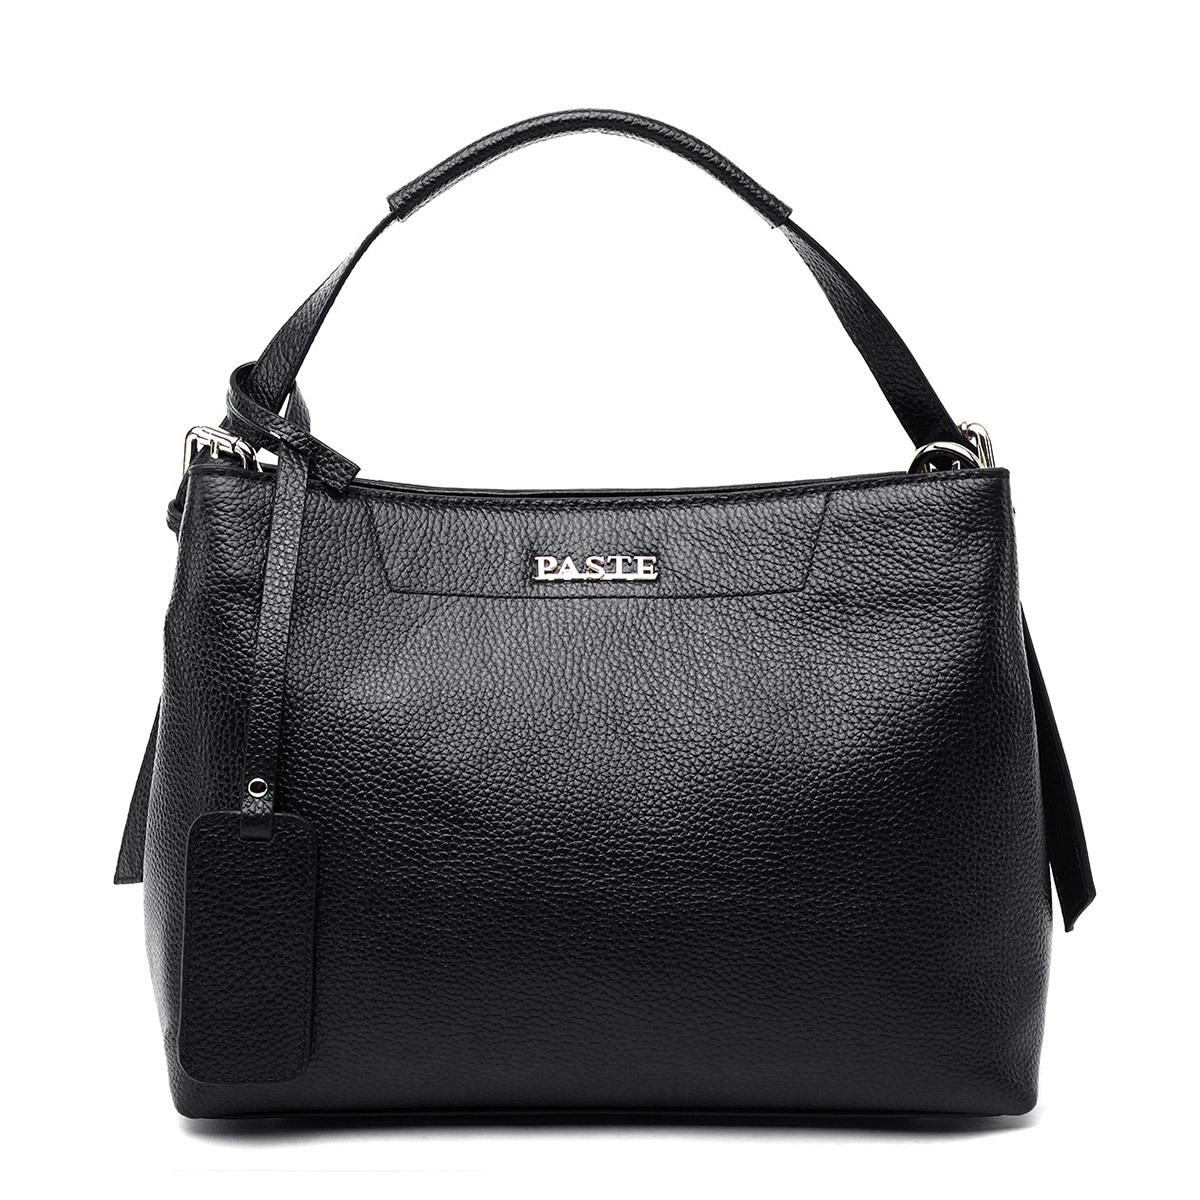 Women Bucket Genuine Leather Bags Fashion Women leather handbags solid color lad